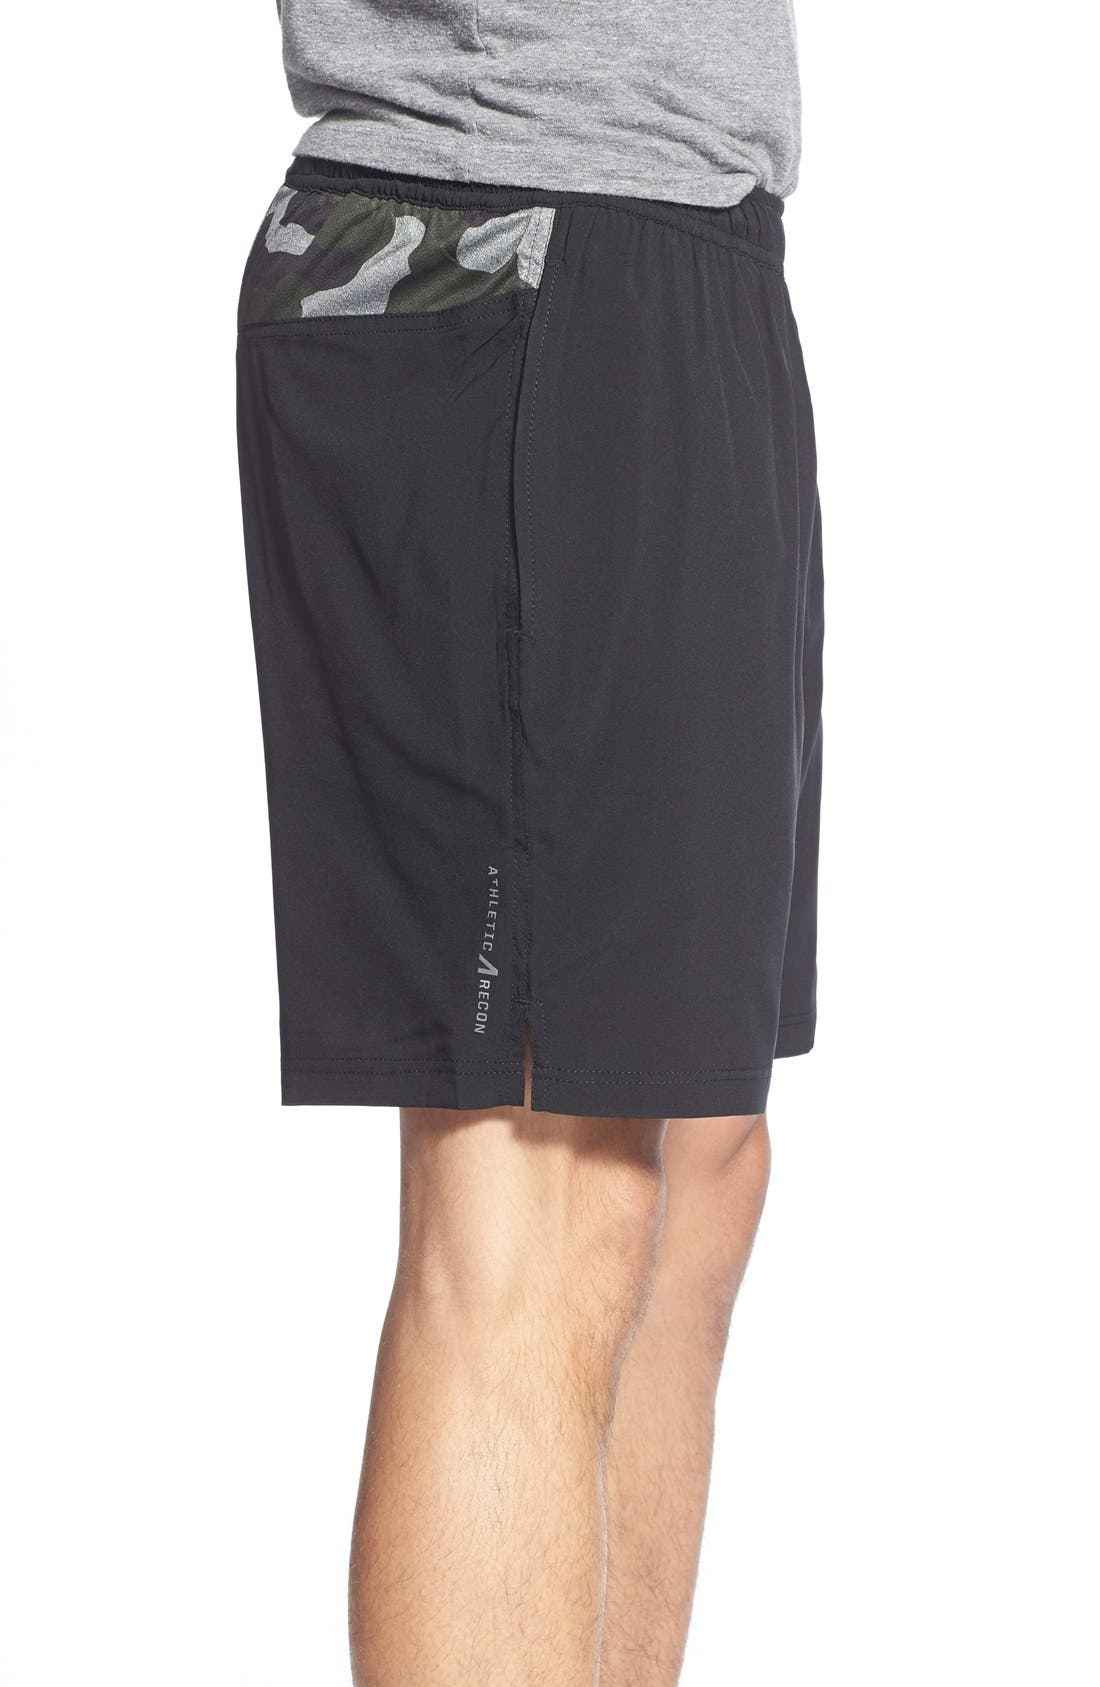 ATHLETIC RECON,                             '6.5' Stretch Woven Performance Shorts,                             Alternate thumbnail 3, color,                             001